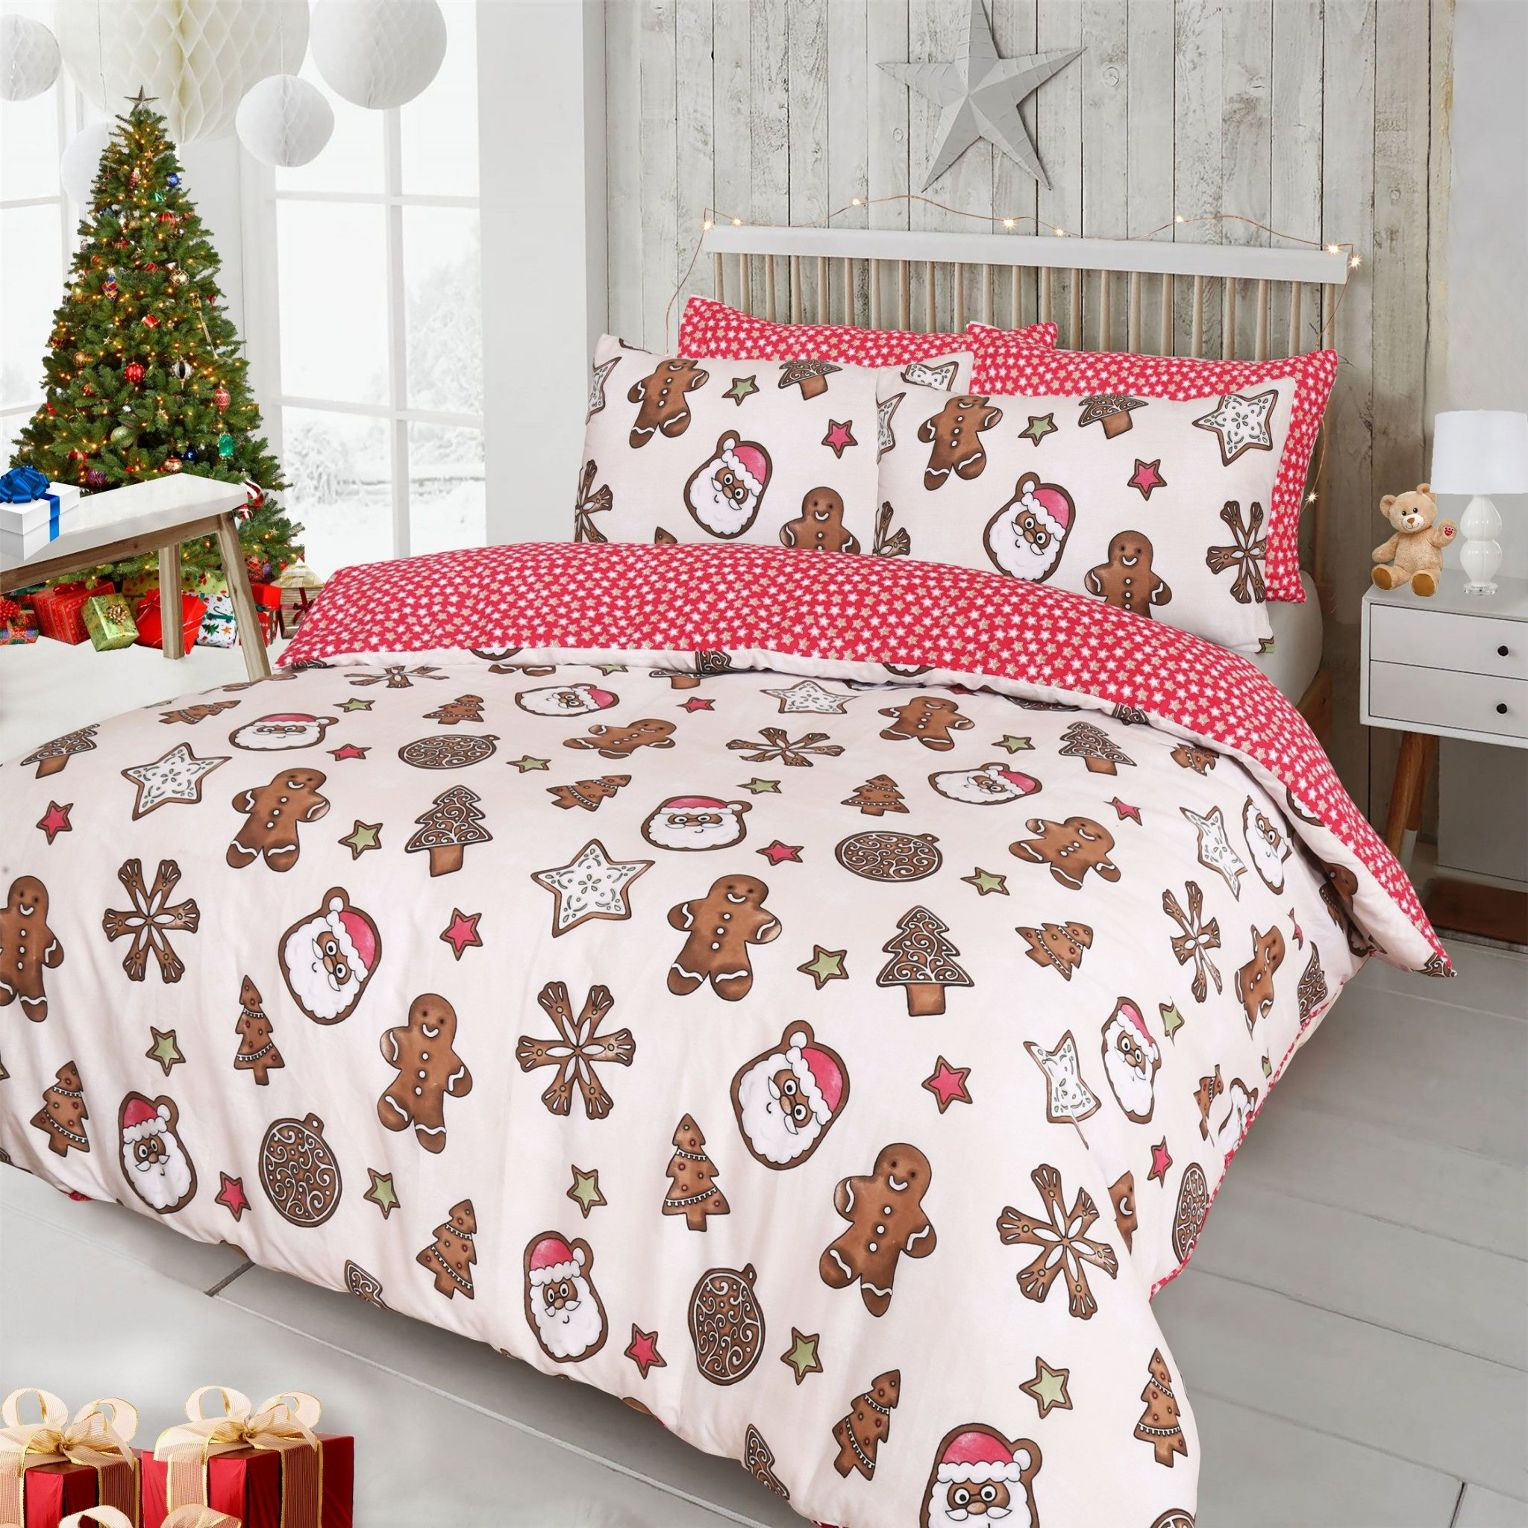 Christmas Bedding.Christmas Bedding Free Delivery